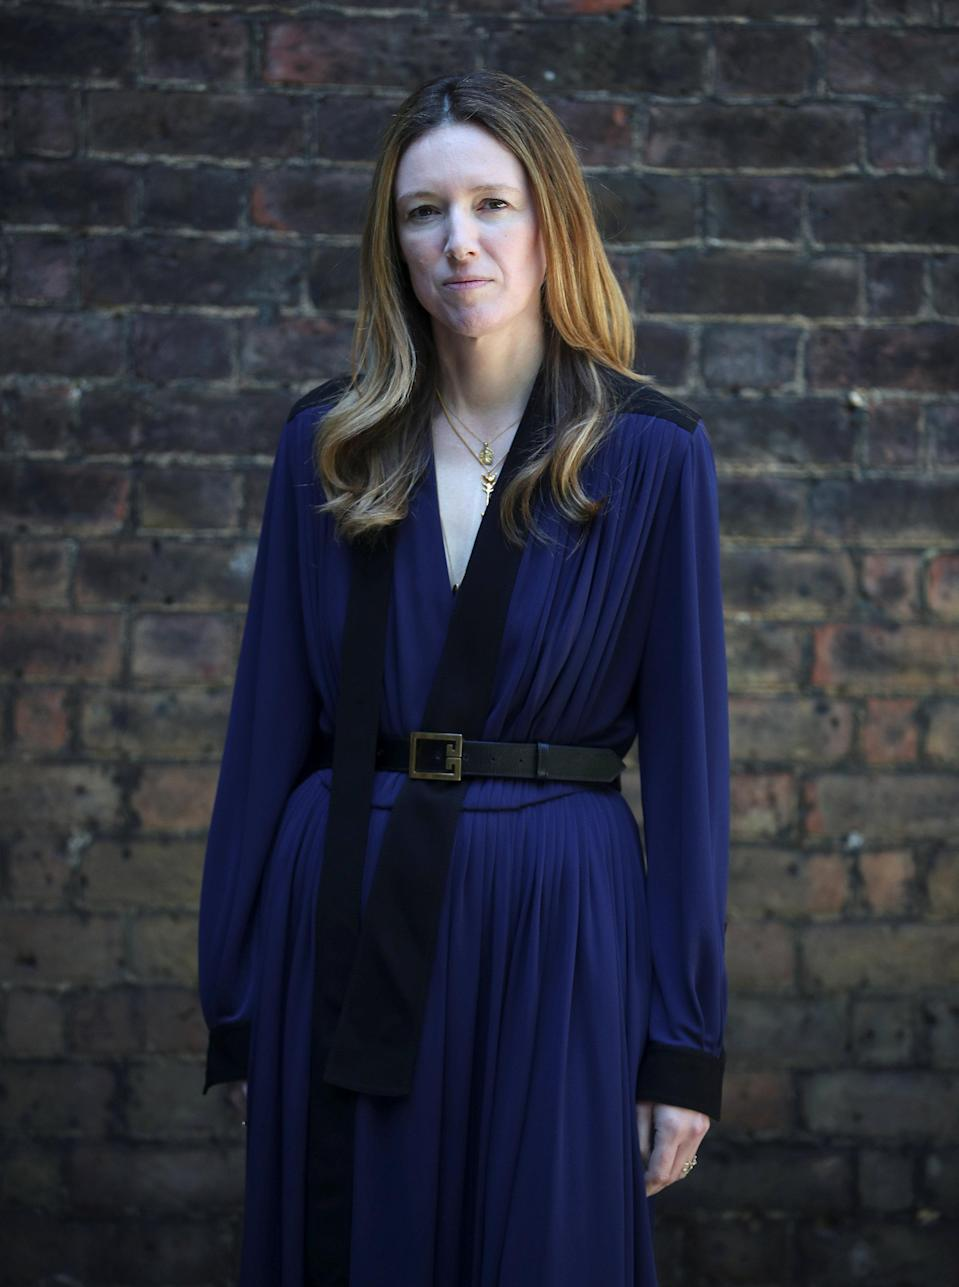 Clare Waight Keller, designer at Givenchy, created Markle's dress. (Photo: Hannah McKay/Pool/Reuters)